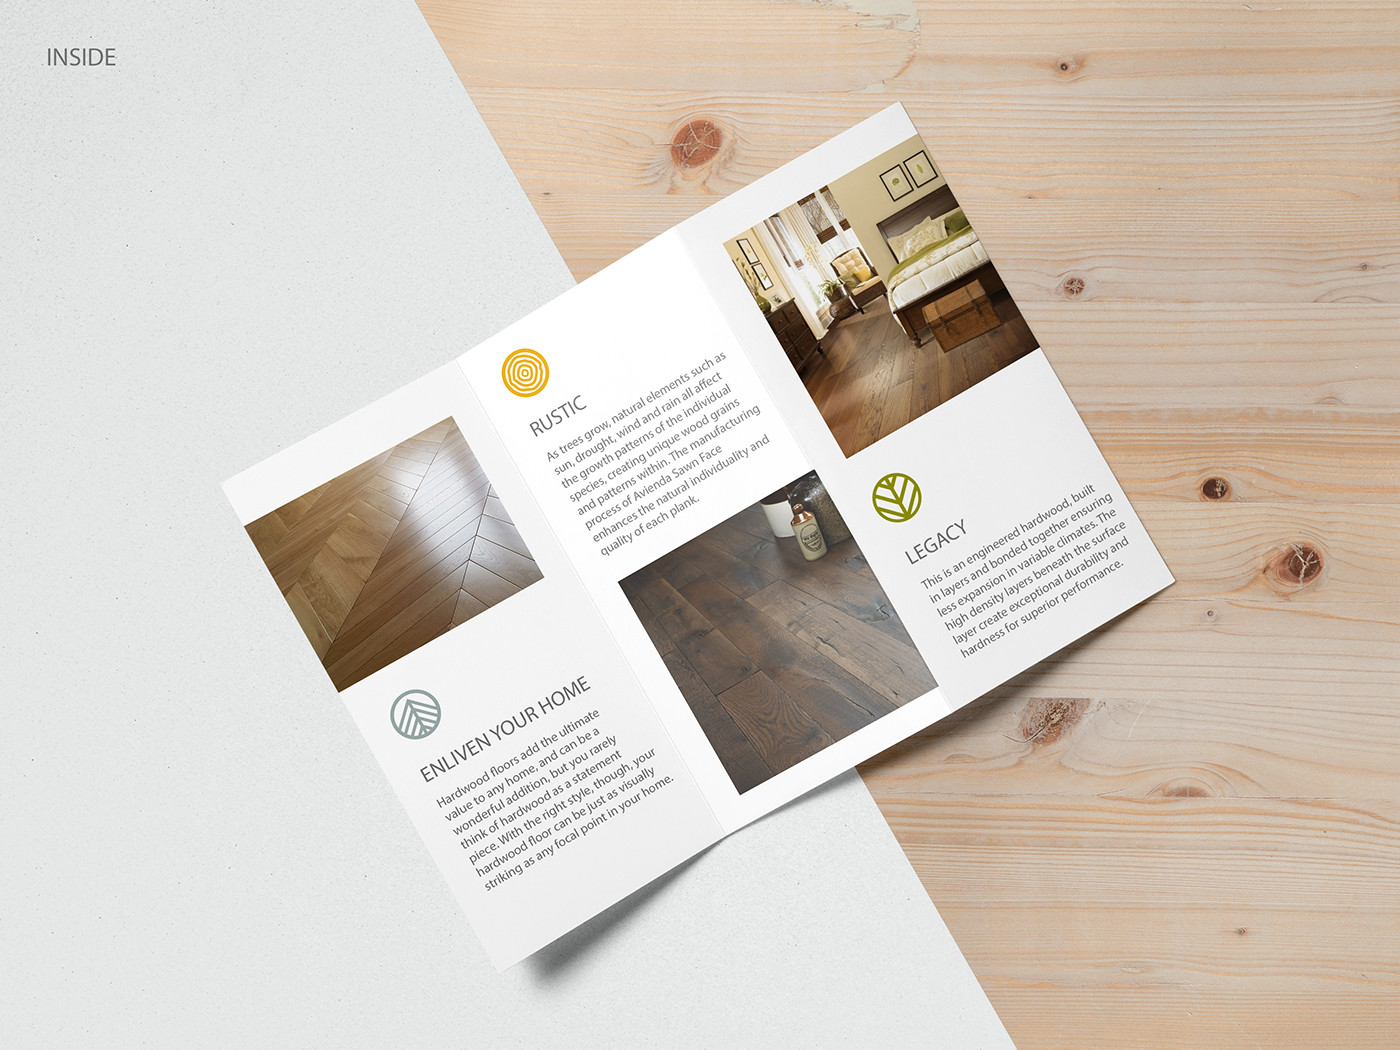 hardwood flooring reviews consumer reports of avienda flooring rebrand on behance with the result of the project brought fluidity to the consumer experience and visually elevated the avienda brand